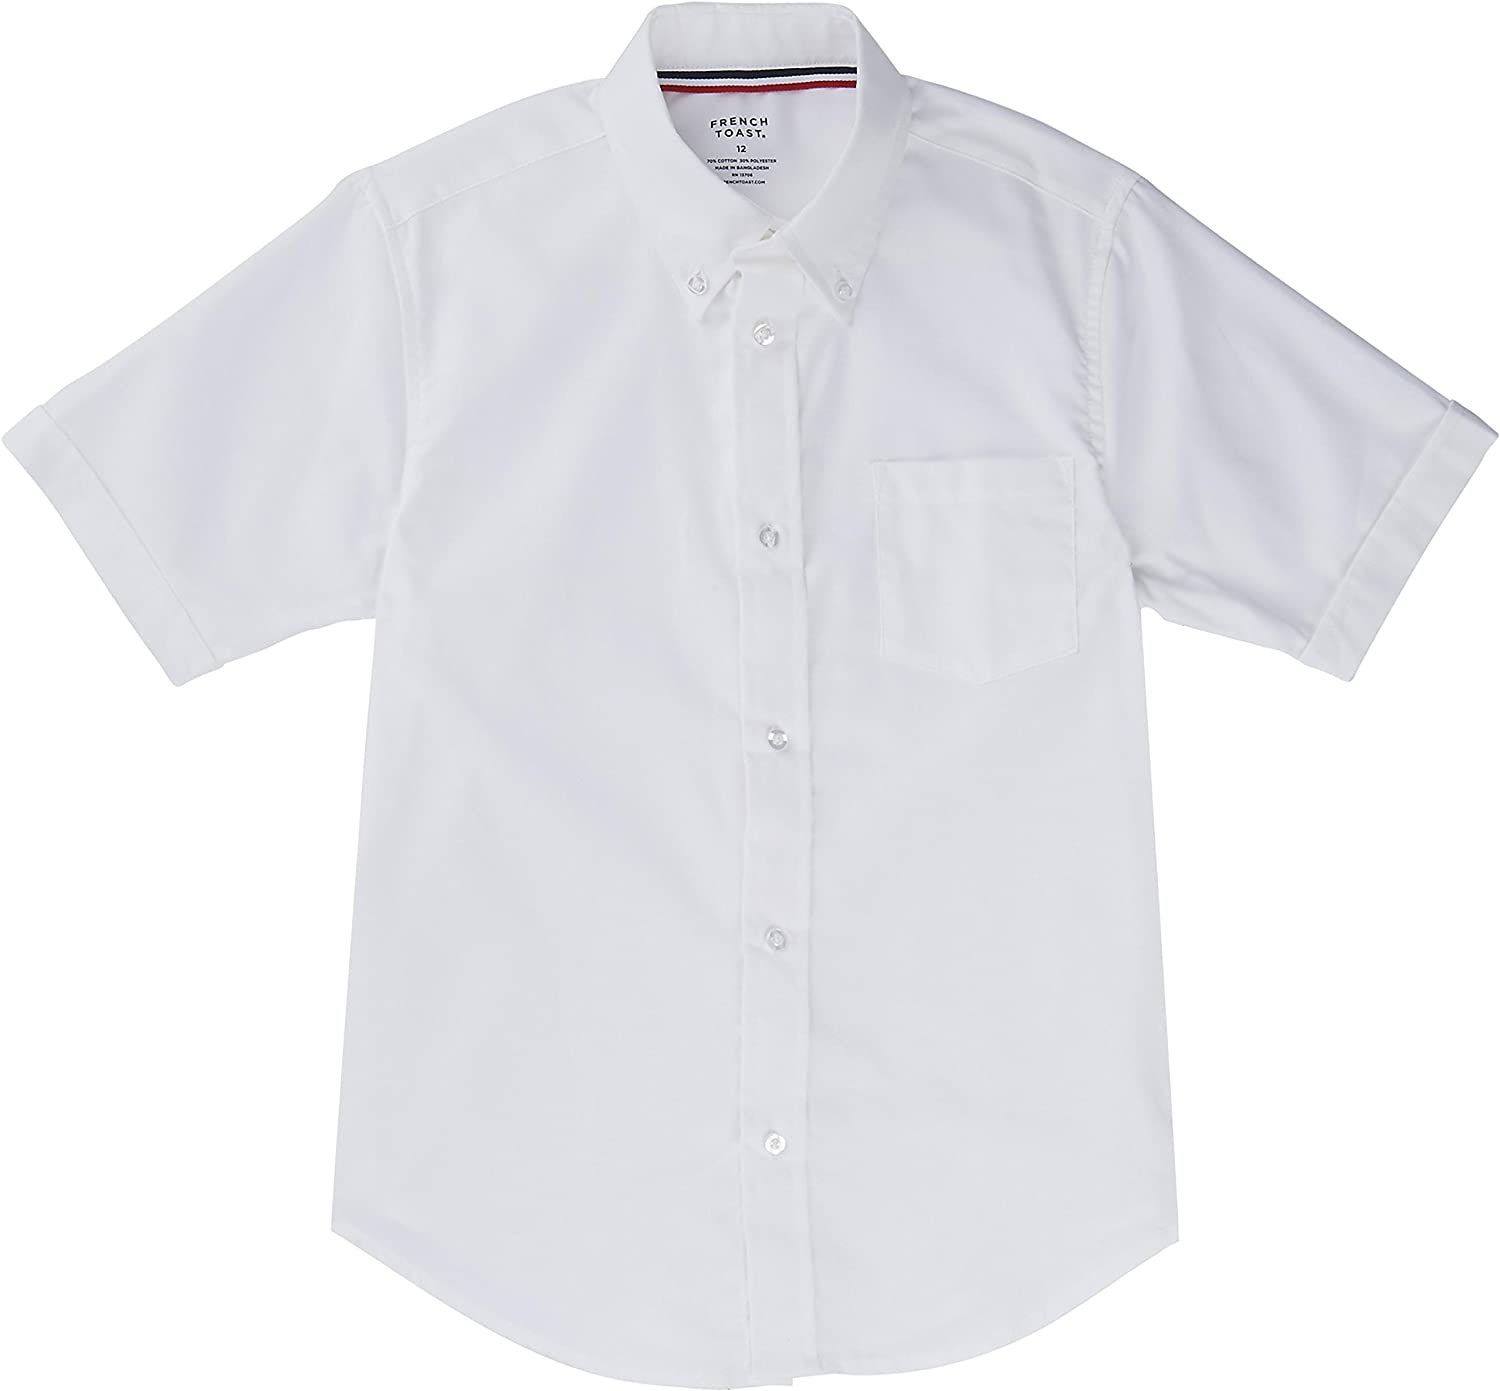 French Toast School Uniform Boys Short Sleeve Oxford Shirt, White, 3T